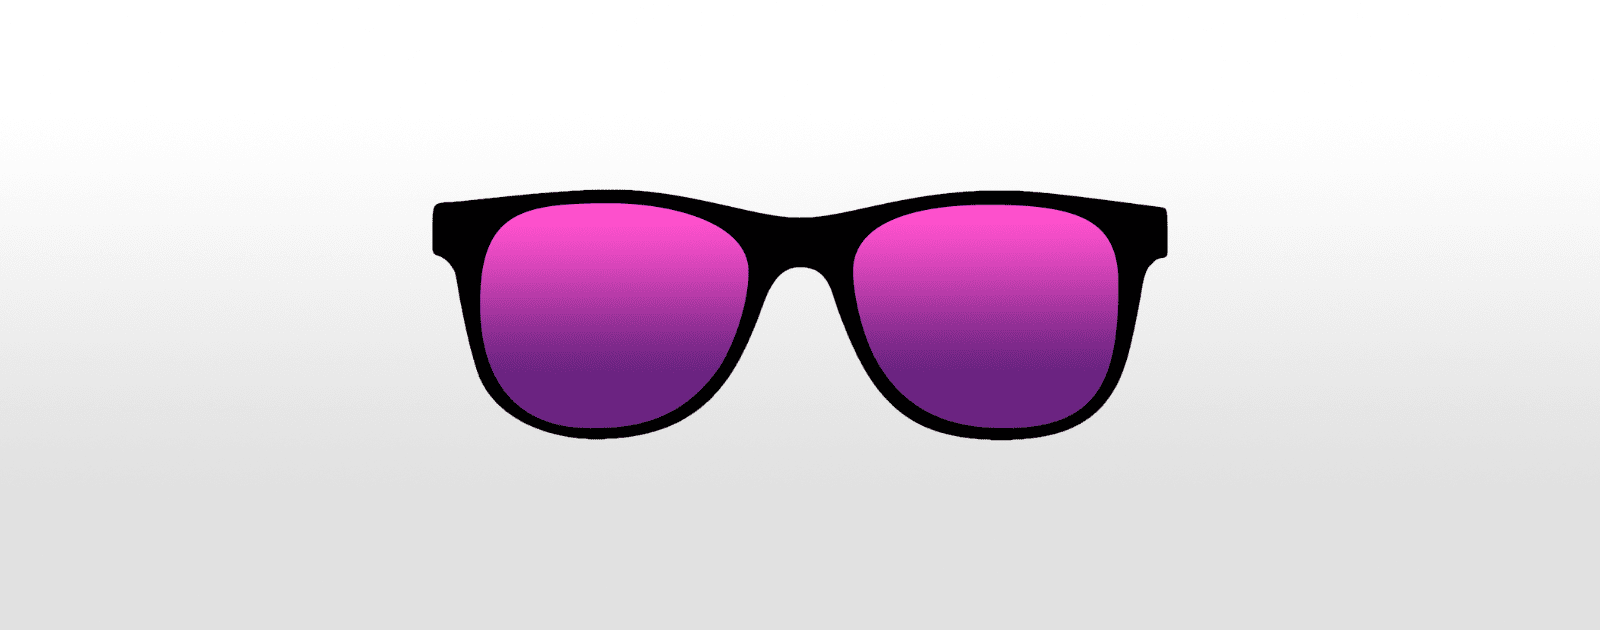 These Special Sunglasses Block Screens